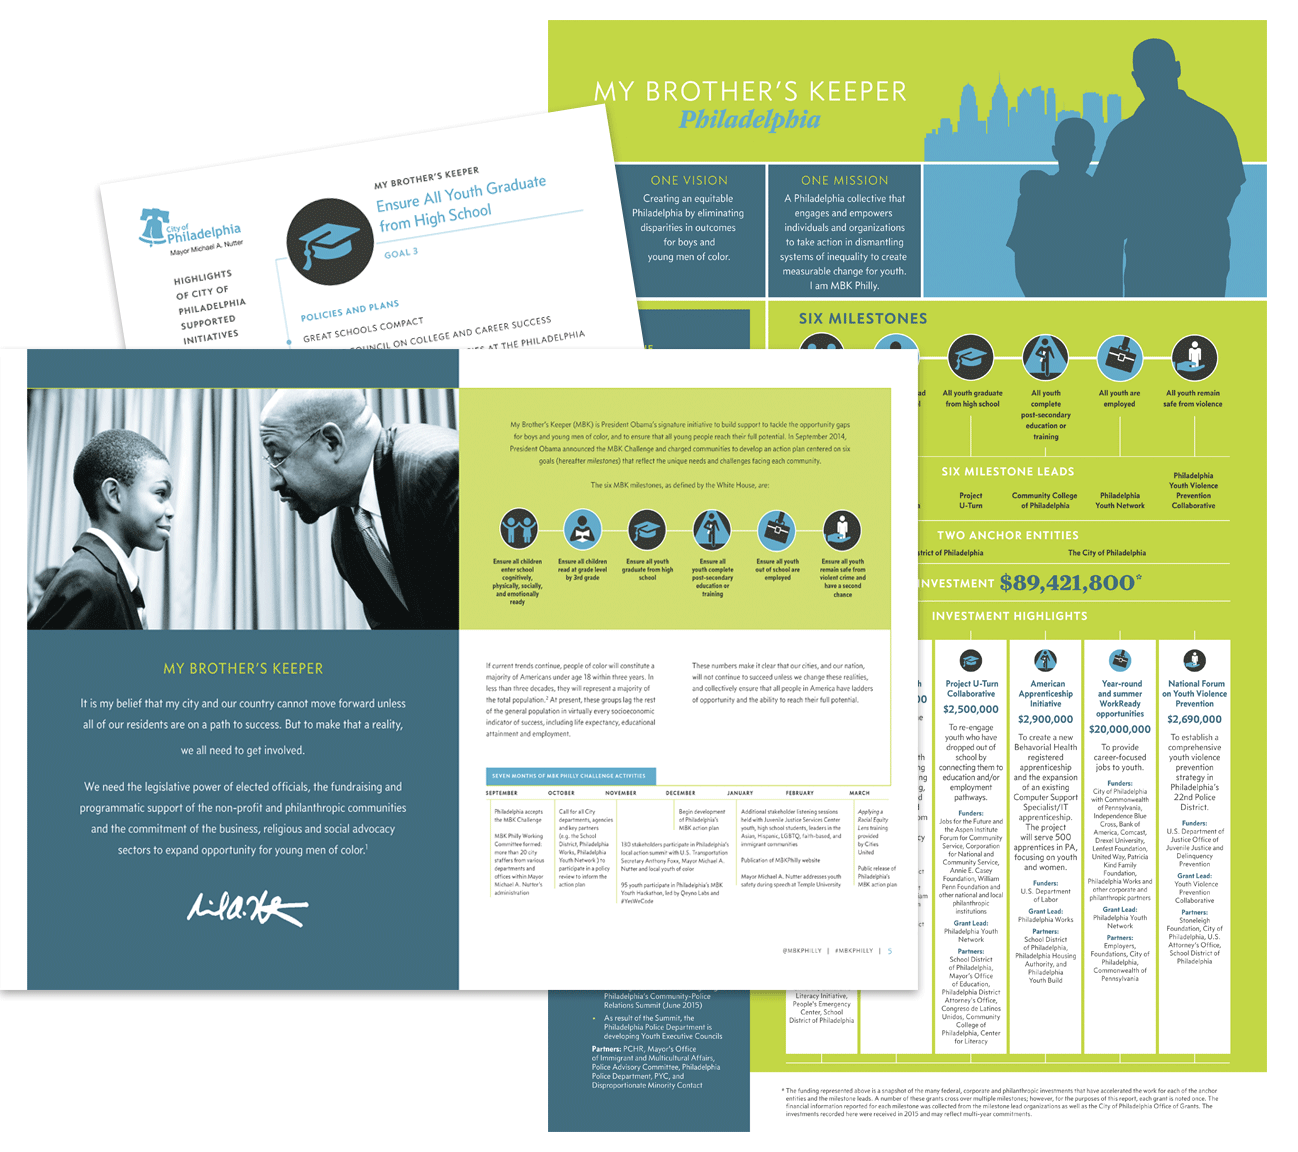 My Brother's Keeper publication and event collateral design